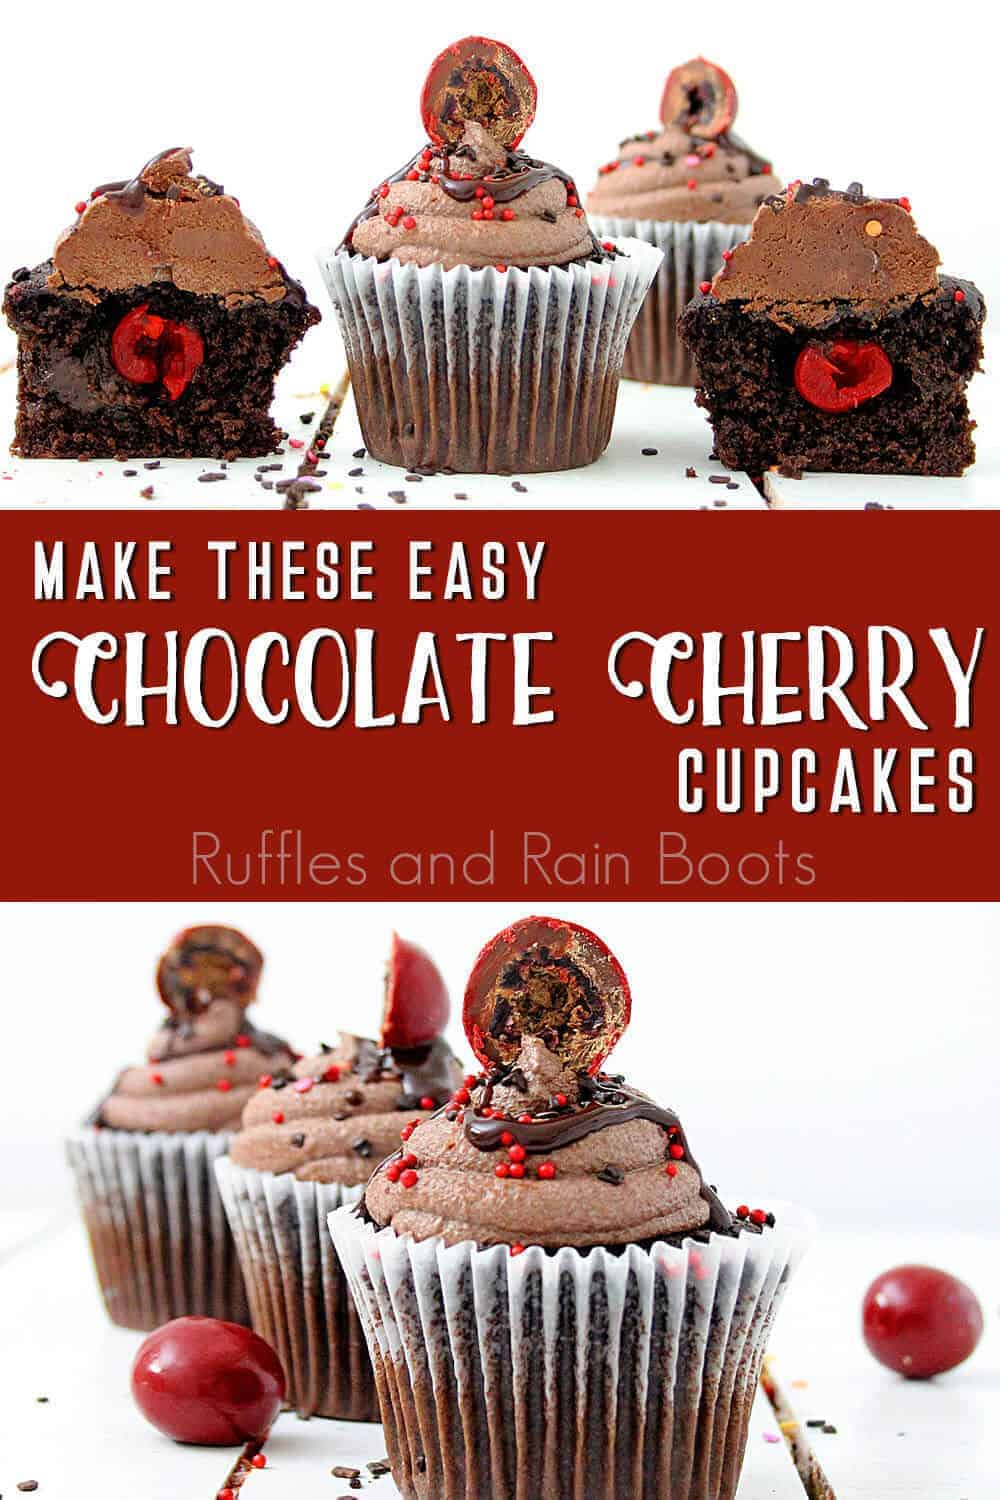 photo collage of chocolate cupcakes with cherries inside with text which reads make these easy chocolate cherry cupcakes